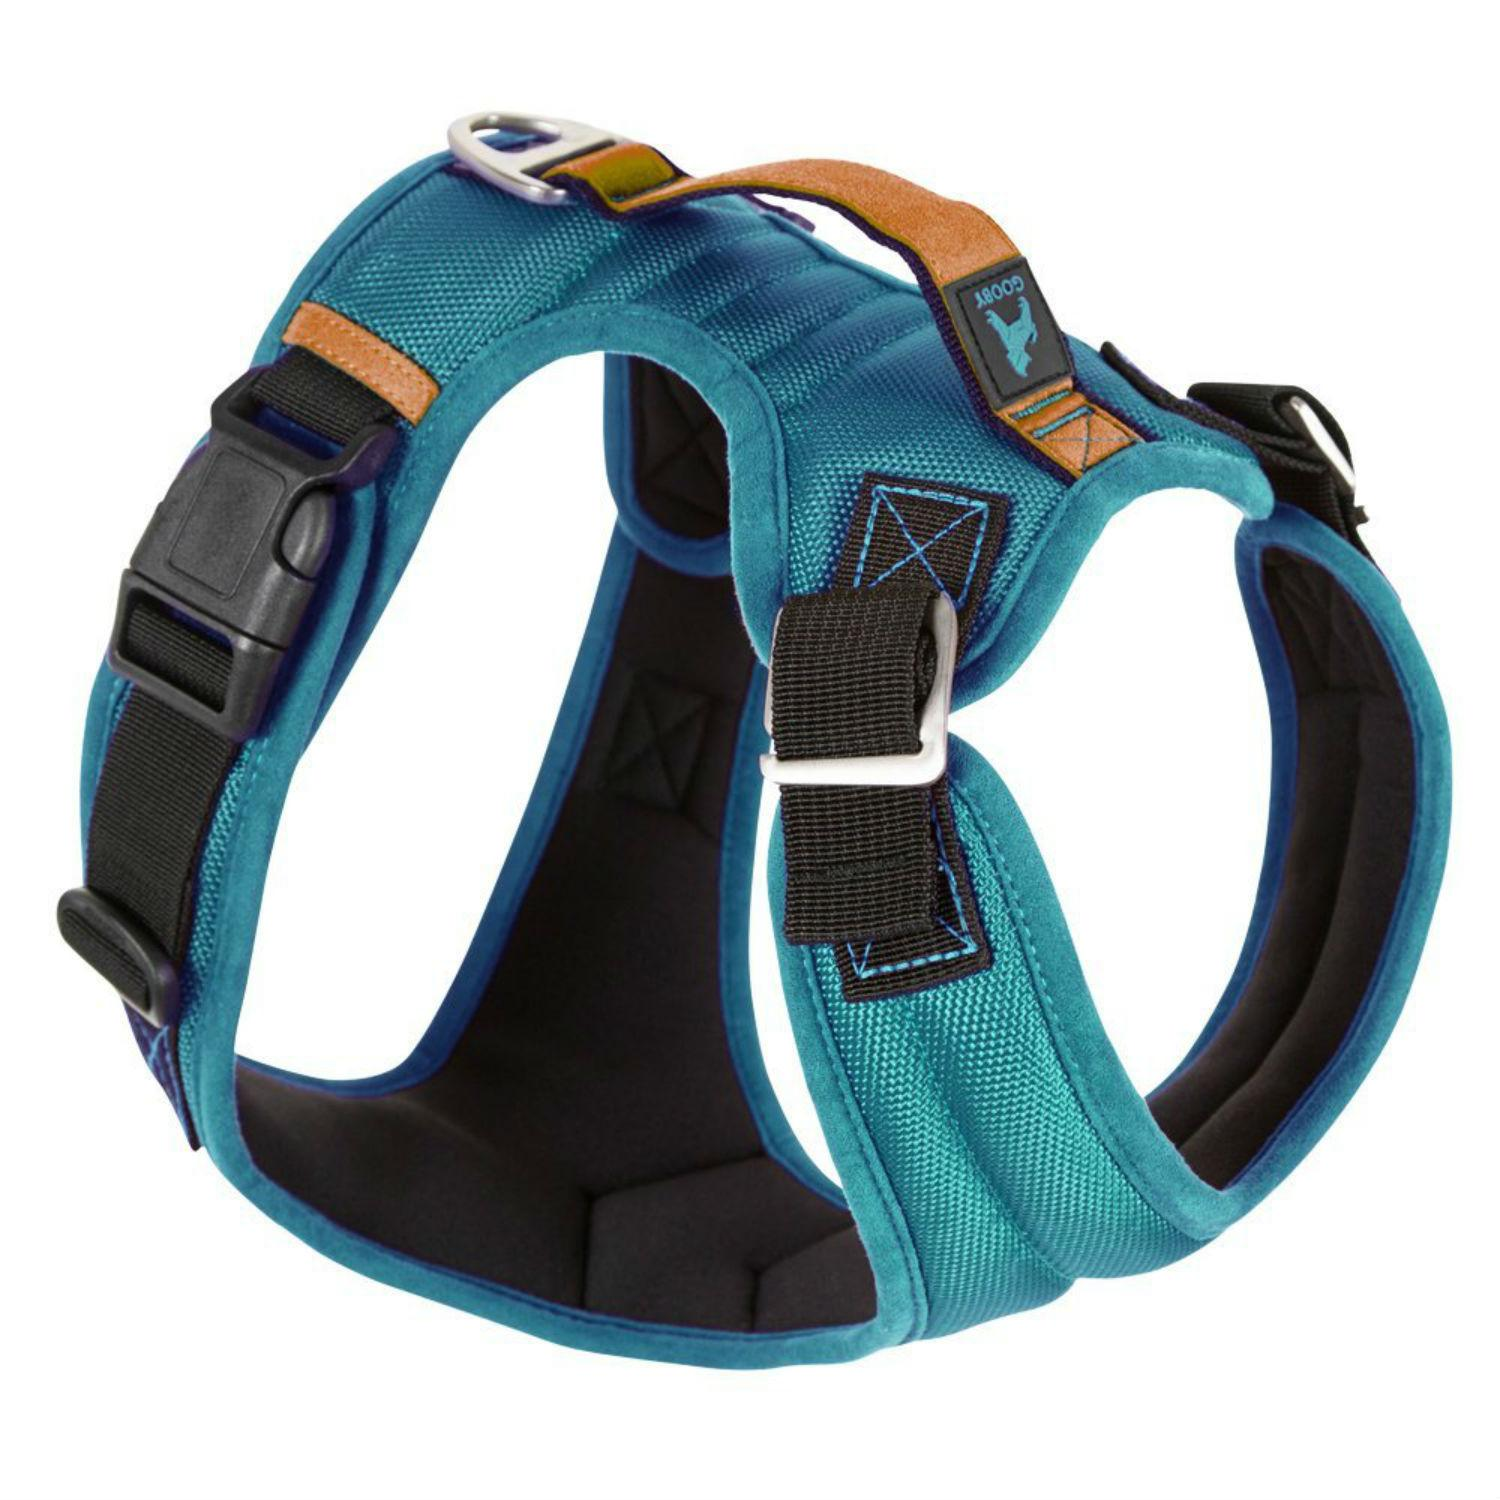 Gooby Pioneer Dog Harness - Turquoise